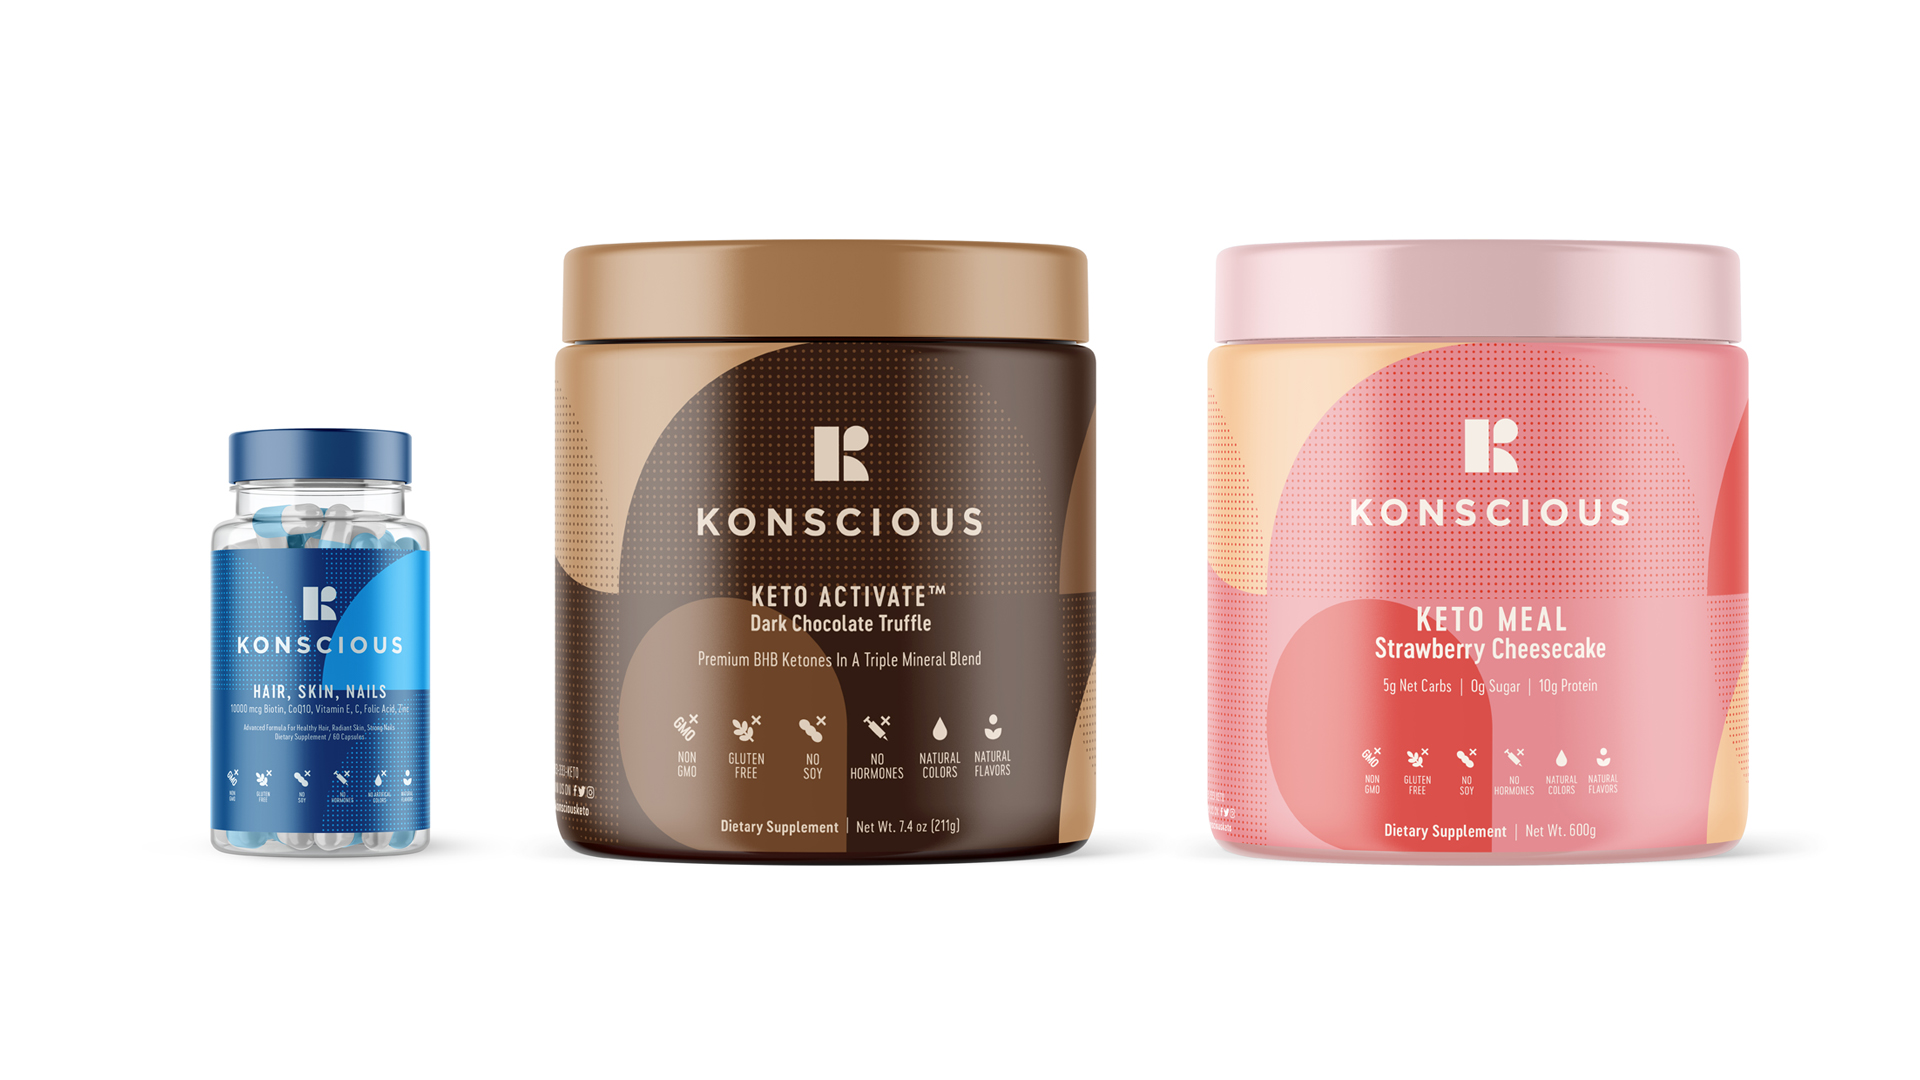 Packaging Design for Konscious Keto Desserts